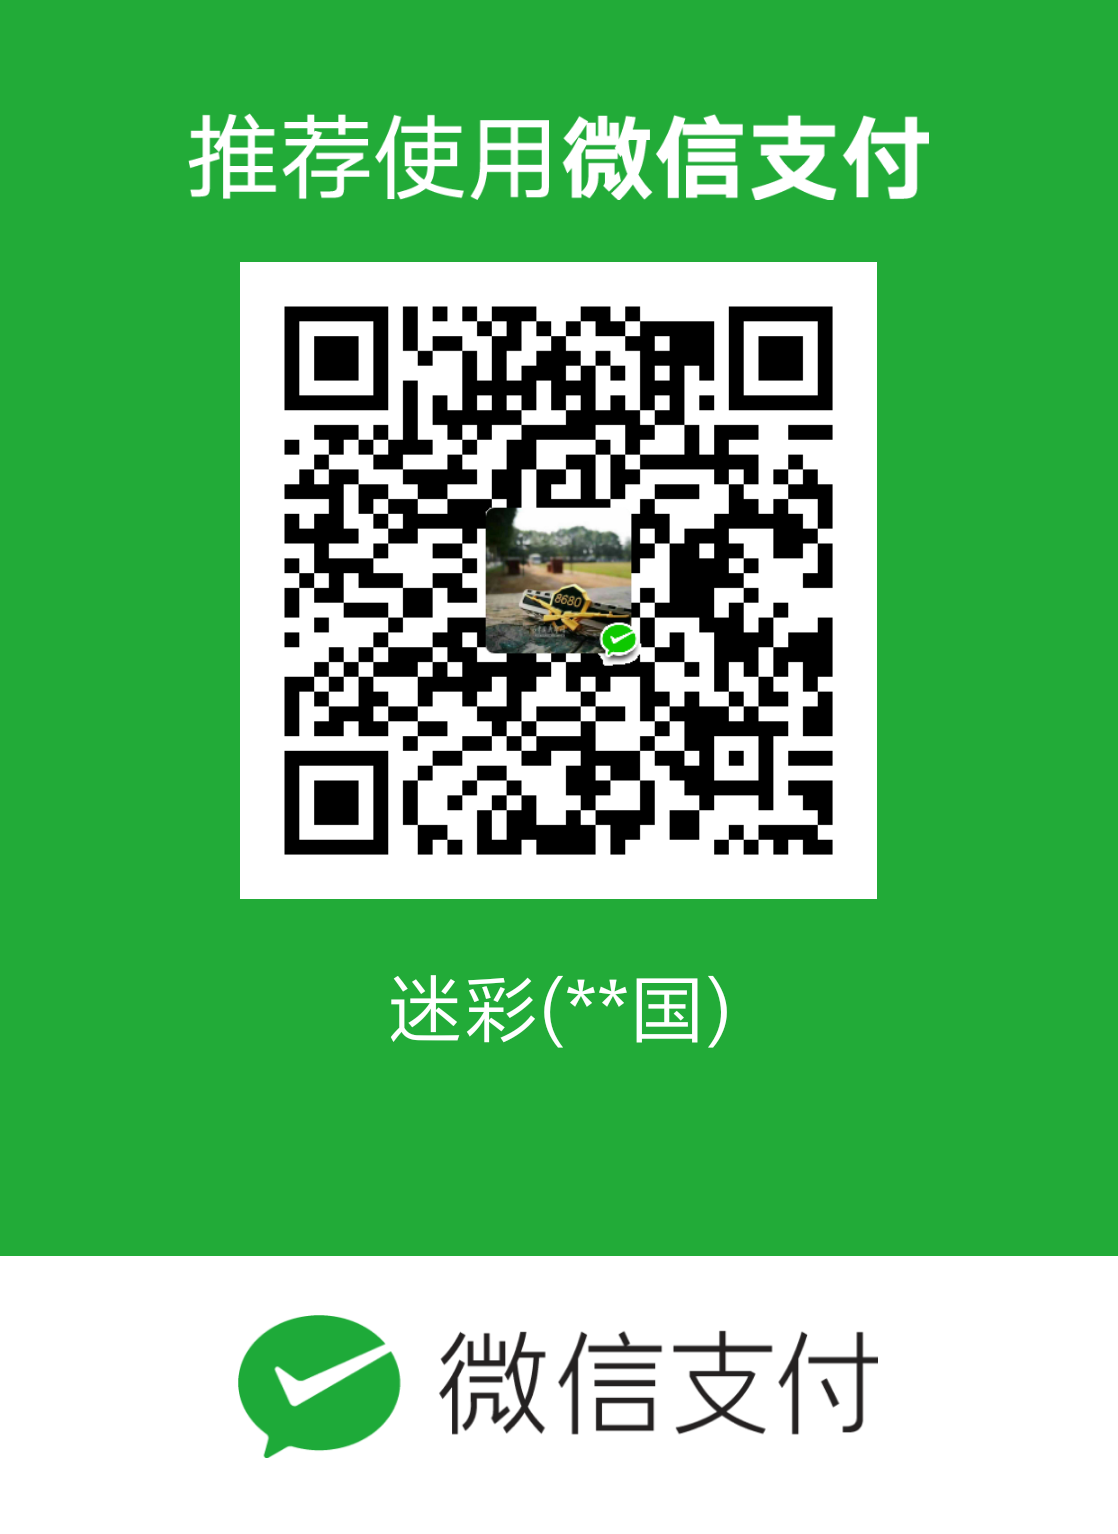 MiCai WeChat Pay